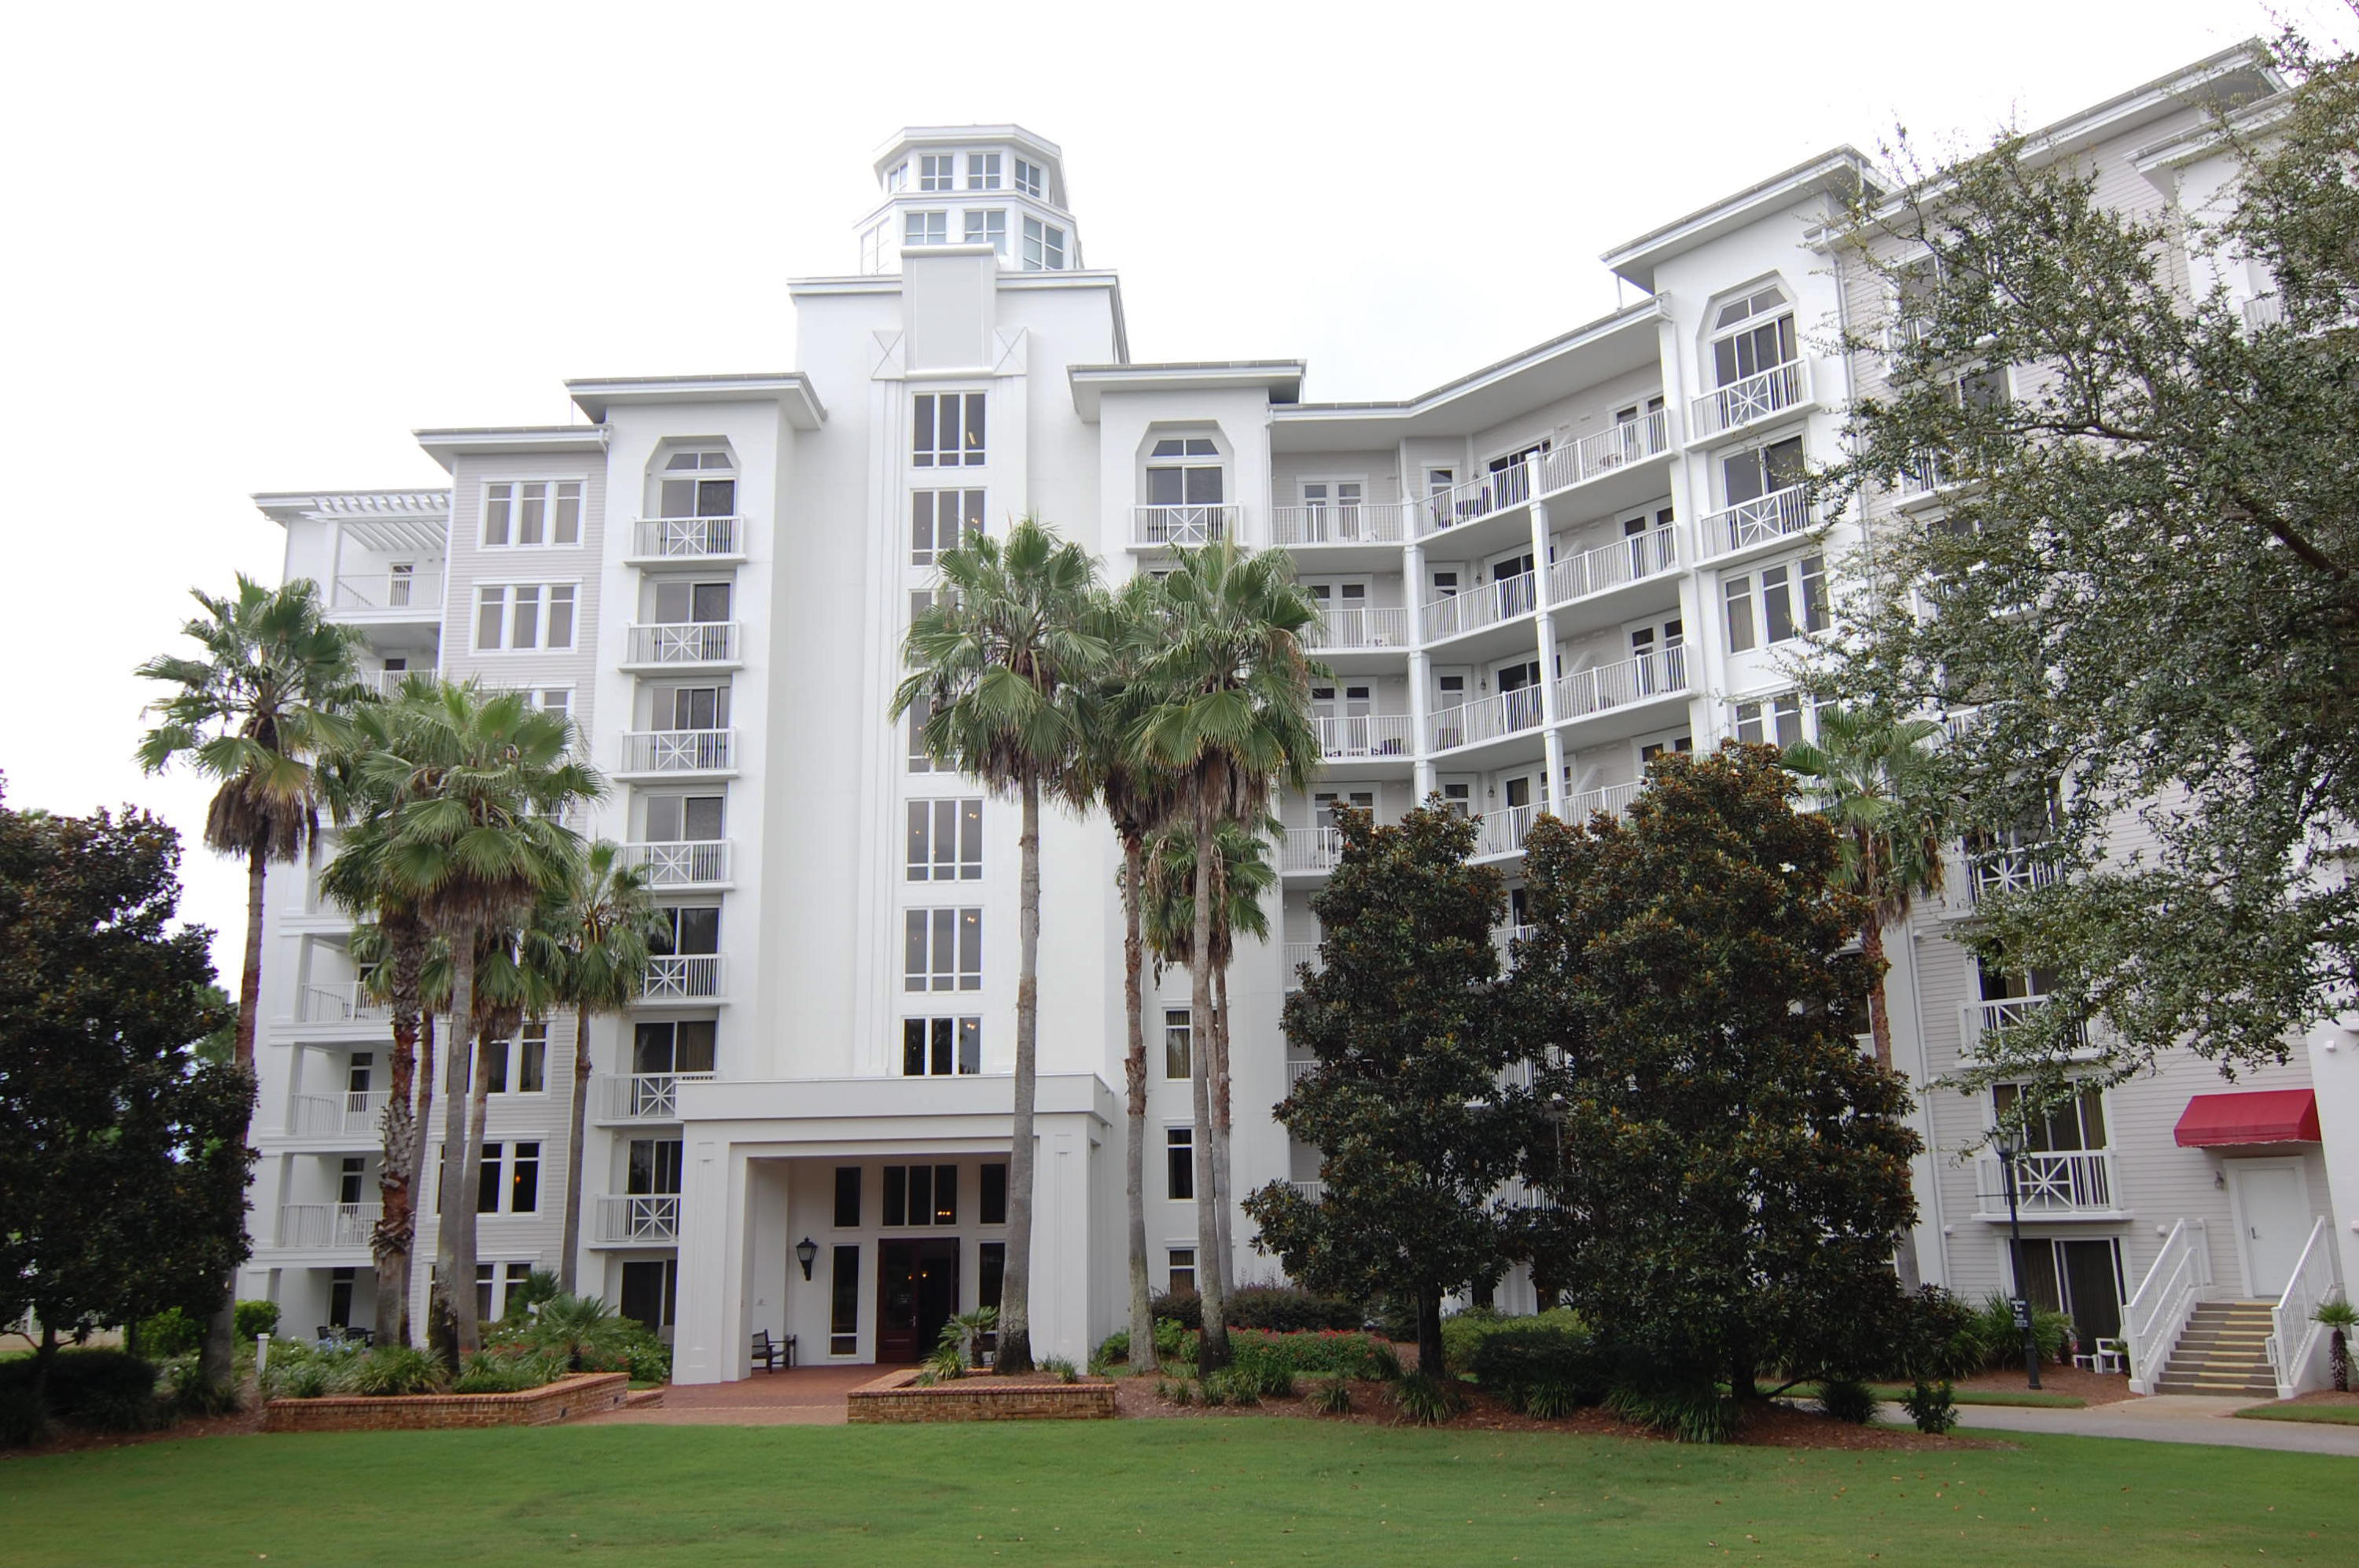 Fabulous one bedroom condo in Elation, the newest building in Baytowne Village.  Although never been rented, it is rental ready.  This quieter area of the Village has access to the fitness center, resort style pool and the private Solstice Club for beautiful sunsets.    This residence has views of the Bay and the Burnt Pine golf course.  The building also has underground parking and storage locker for your beach gear.  Granite counter tops, close to elevator and on the 3rd floor.  Very Clean. This is one to see. Buyer to verify all dimensions and fees.